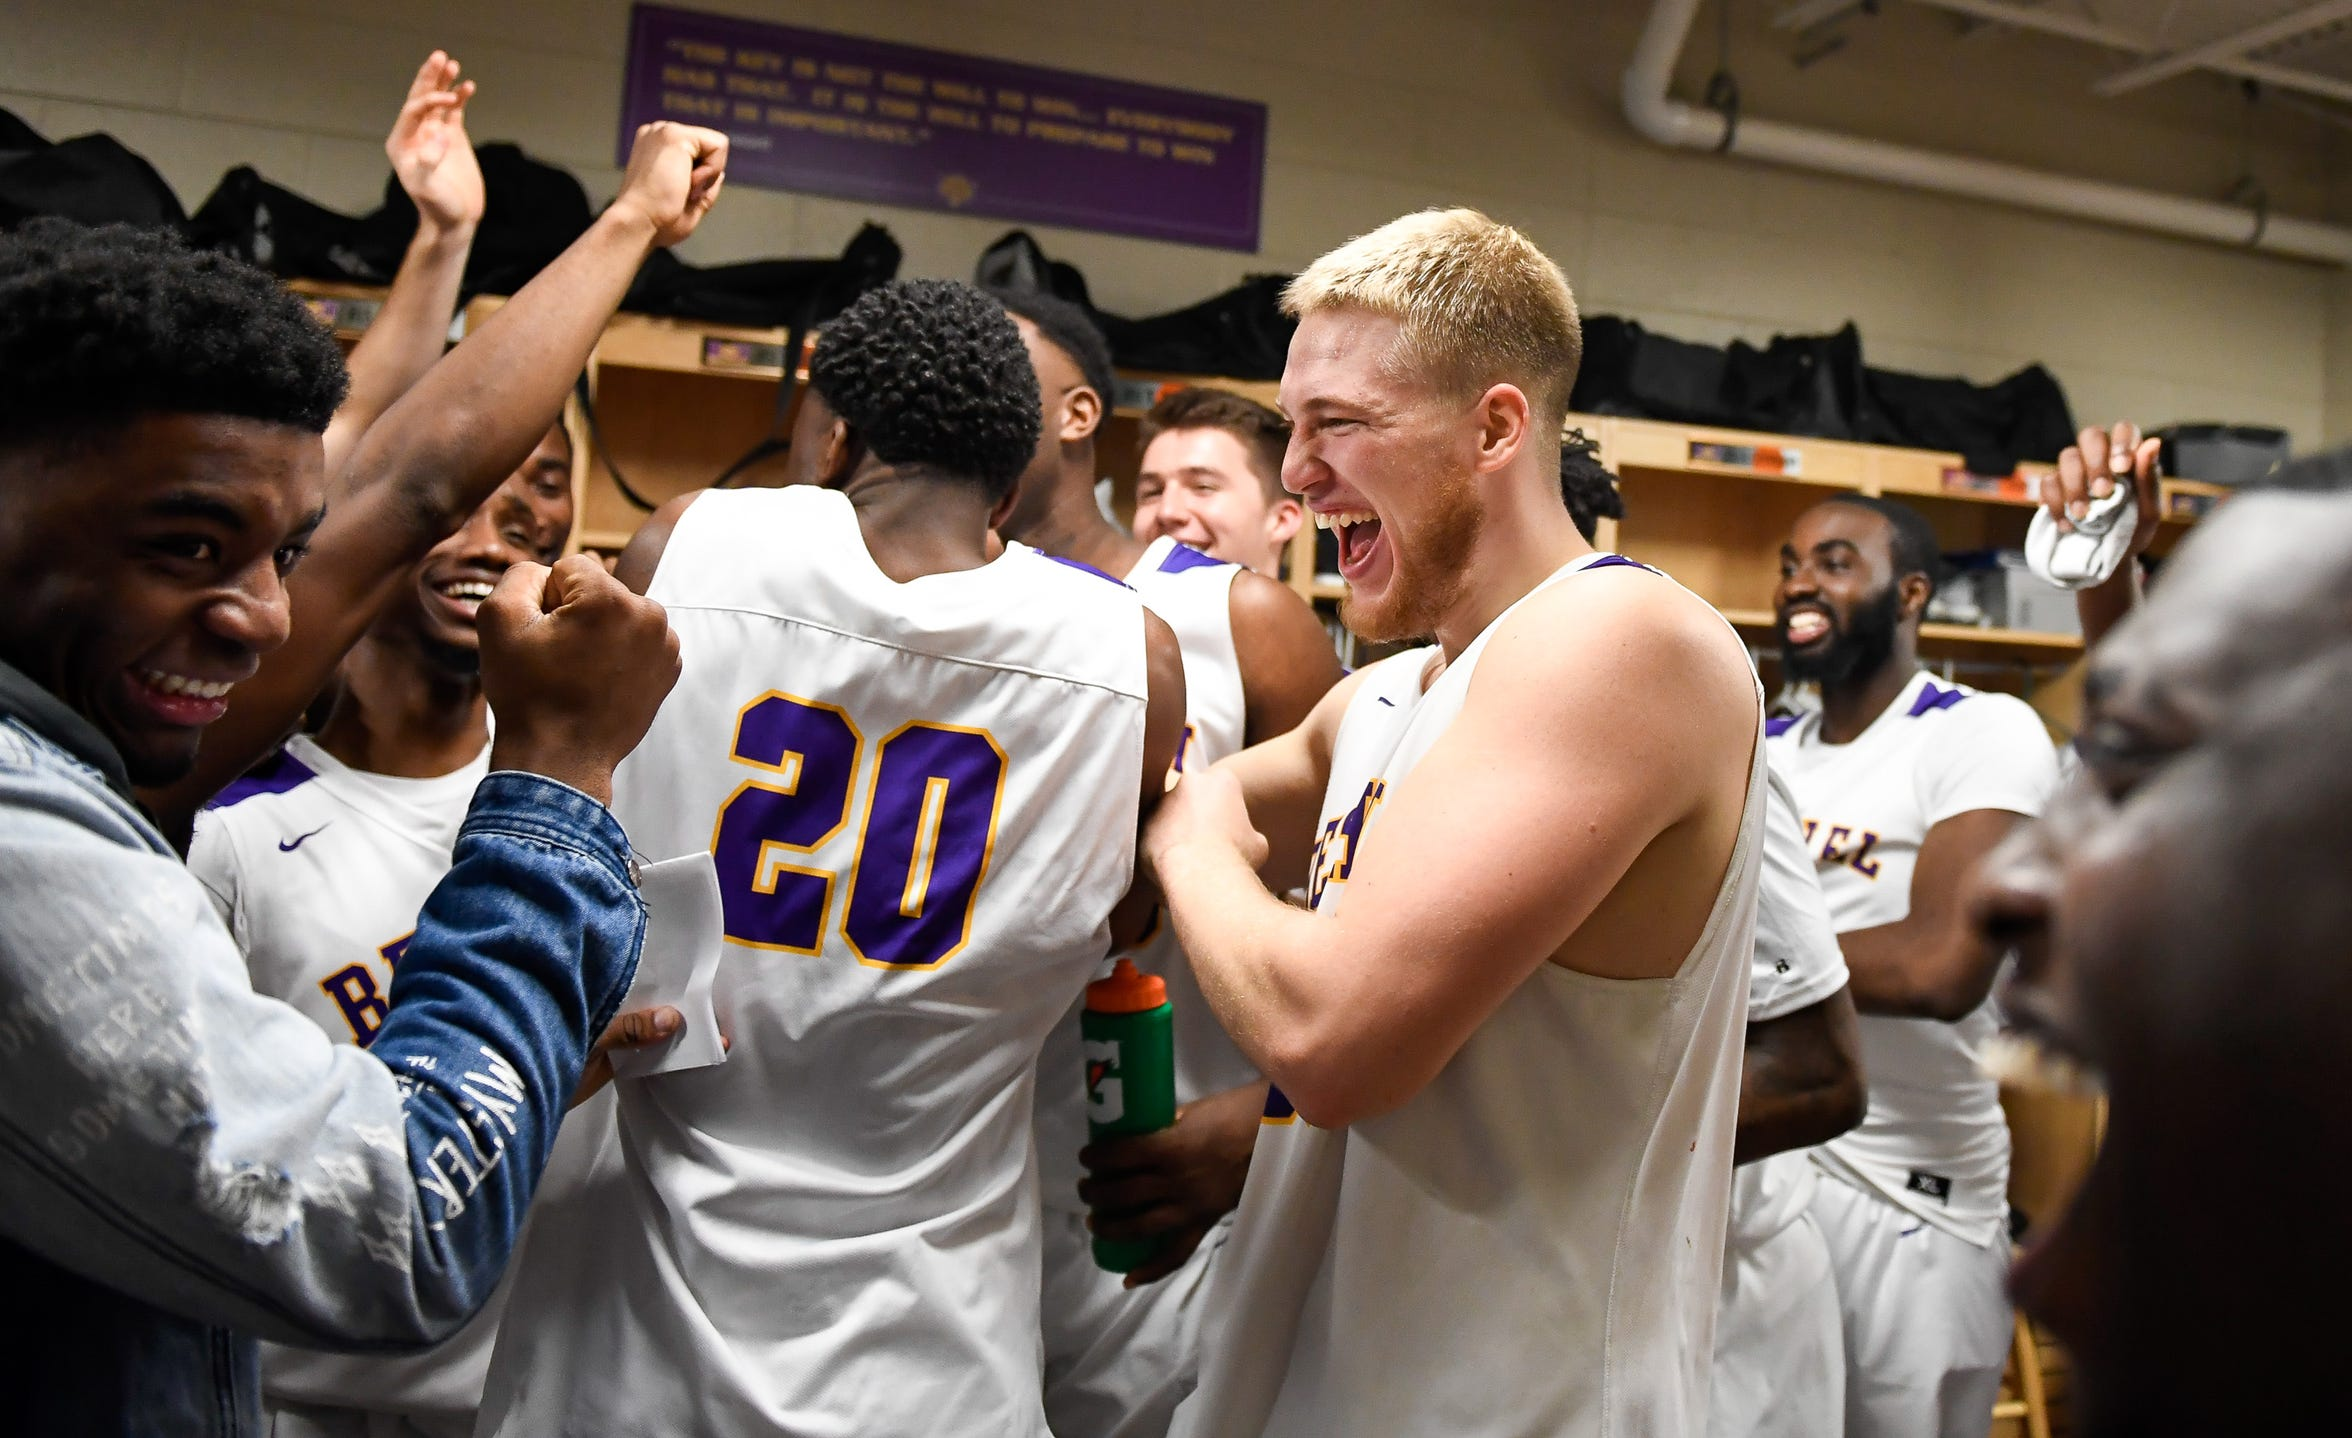 Celebration in the locker room, after being down by double digits at the half, Cayden Edmonson celebrates with his teammates after posting an 84-75 win over rival the Freed-Hardeman Lions at Bethel's Crisp Arena Thursday evening, November 14, 2019.